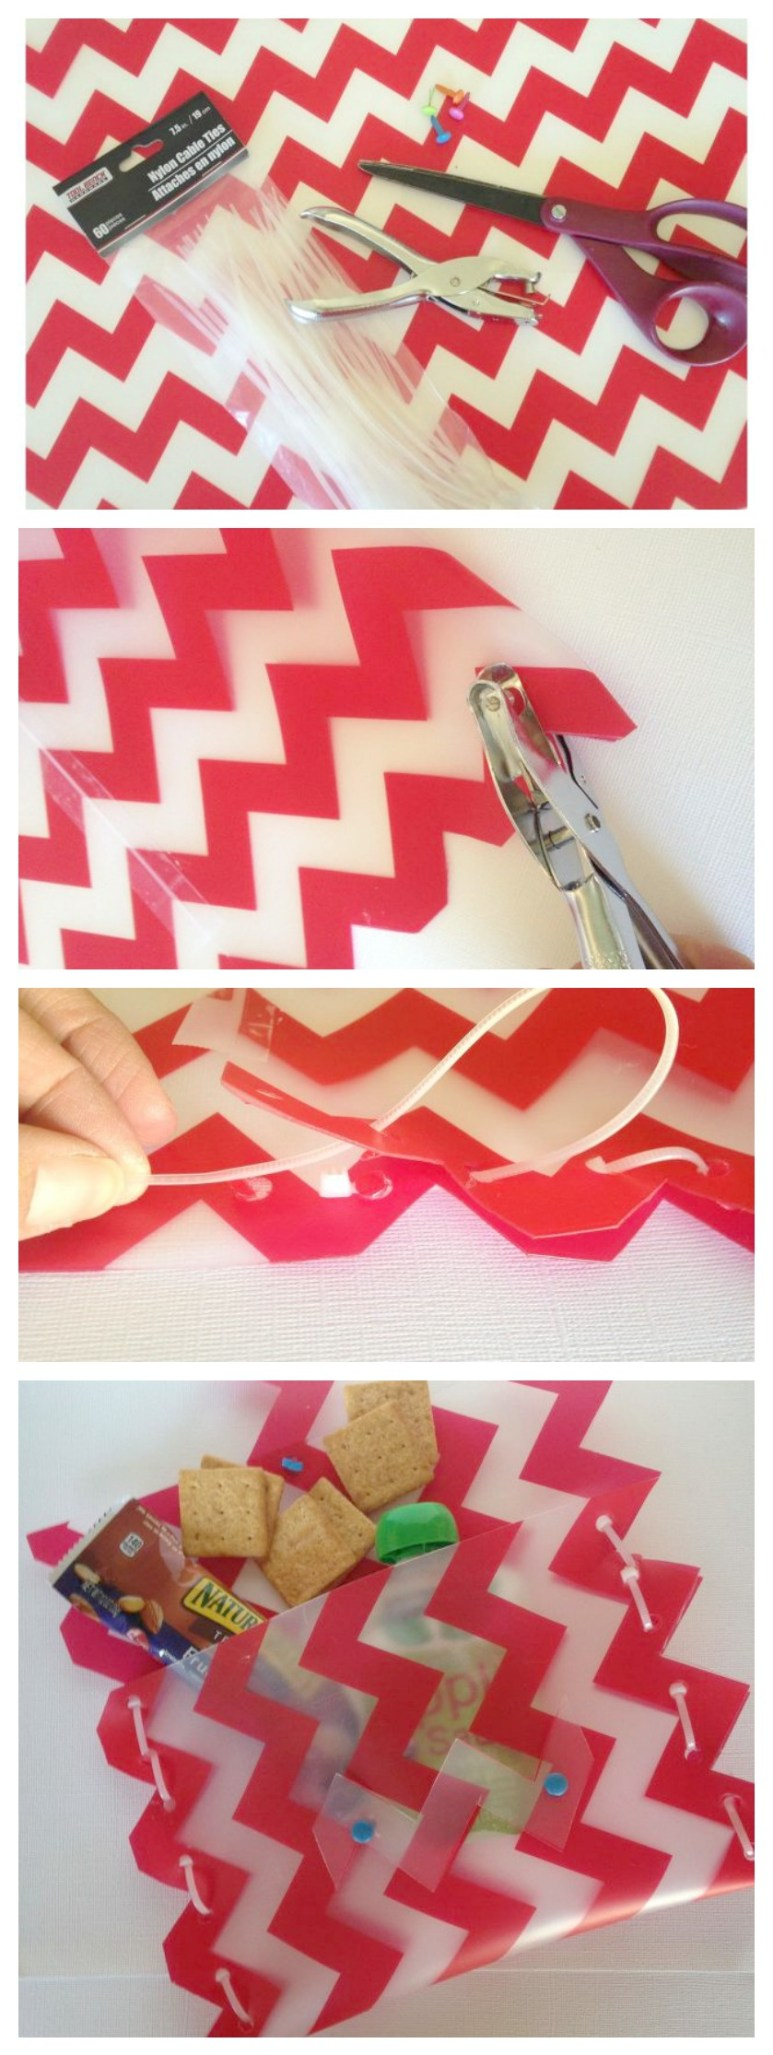 Making a snack pouch out of a vinyl placemat #30dayflip